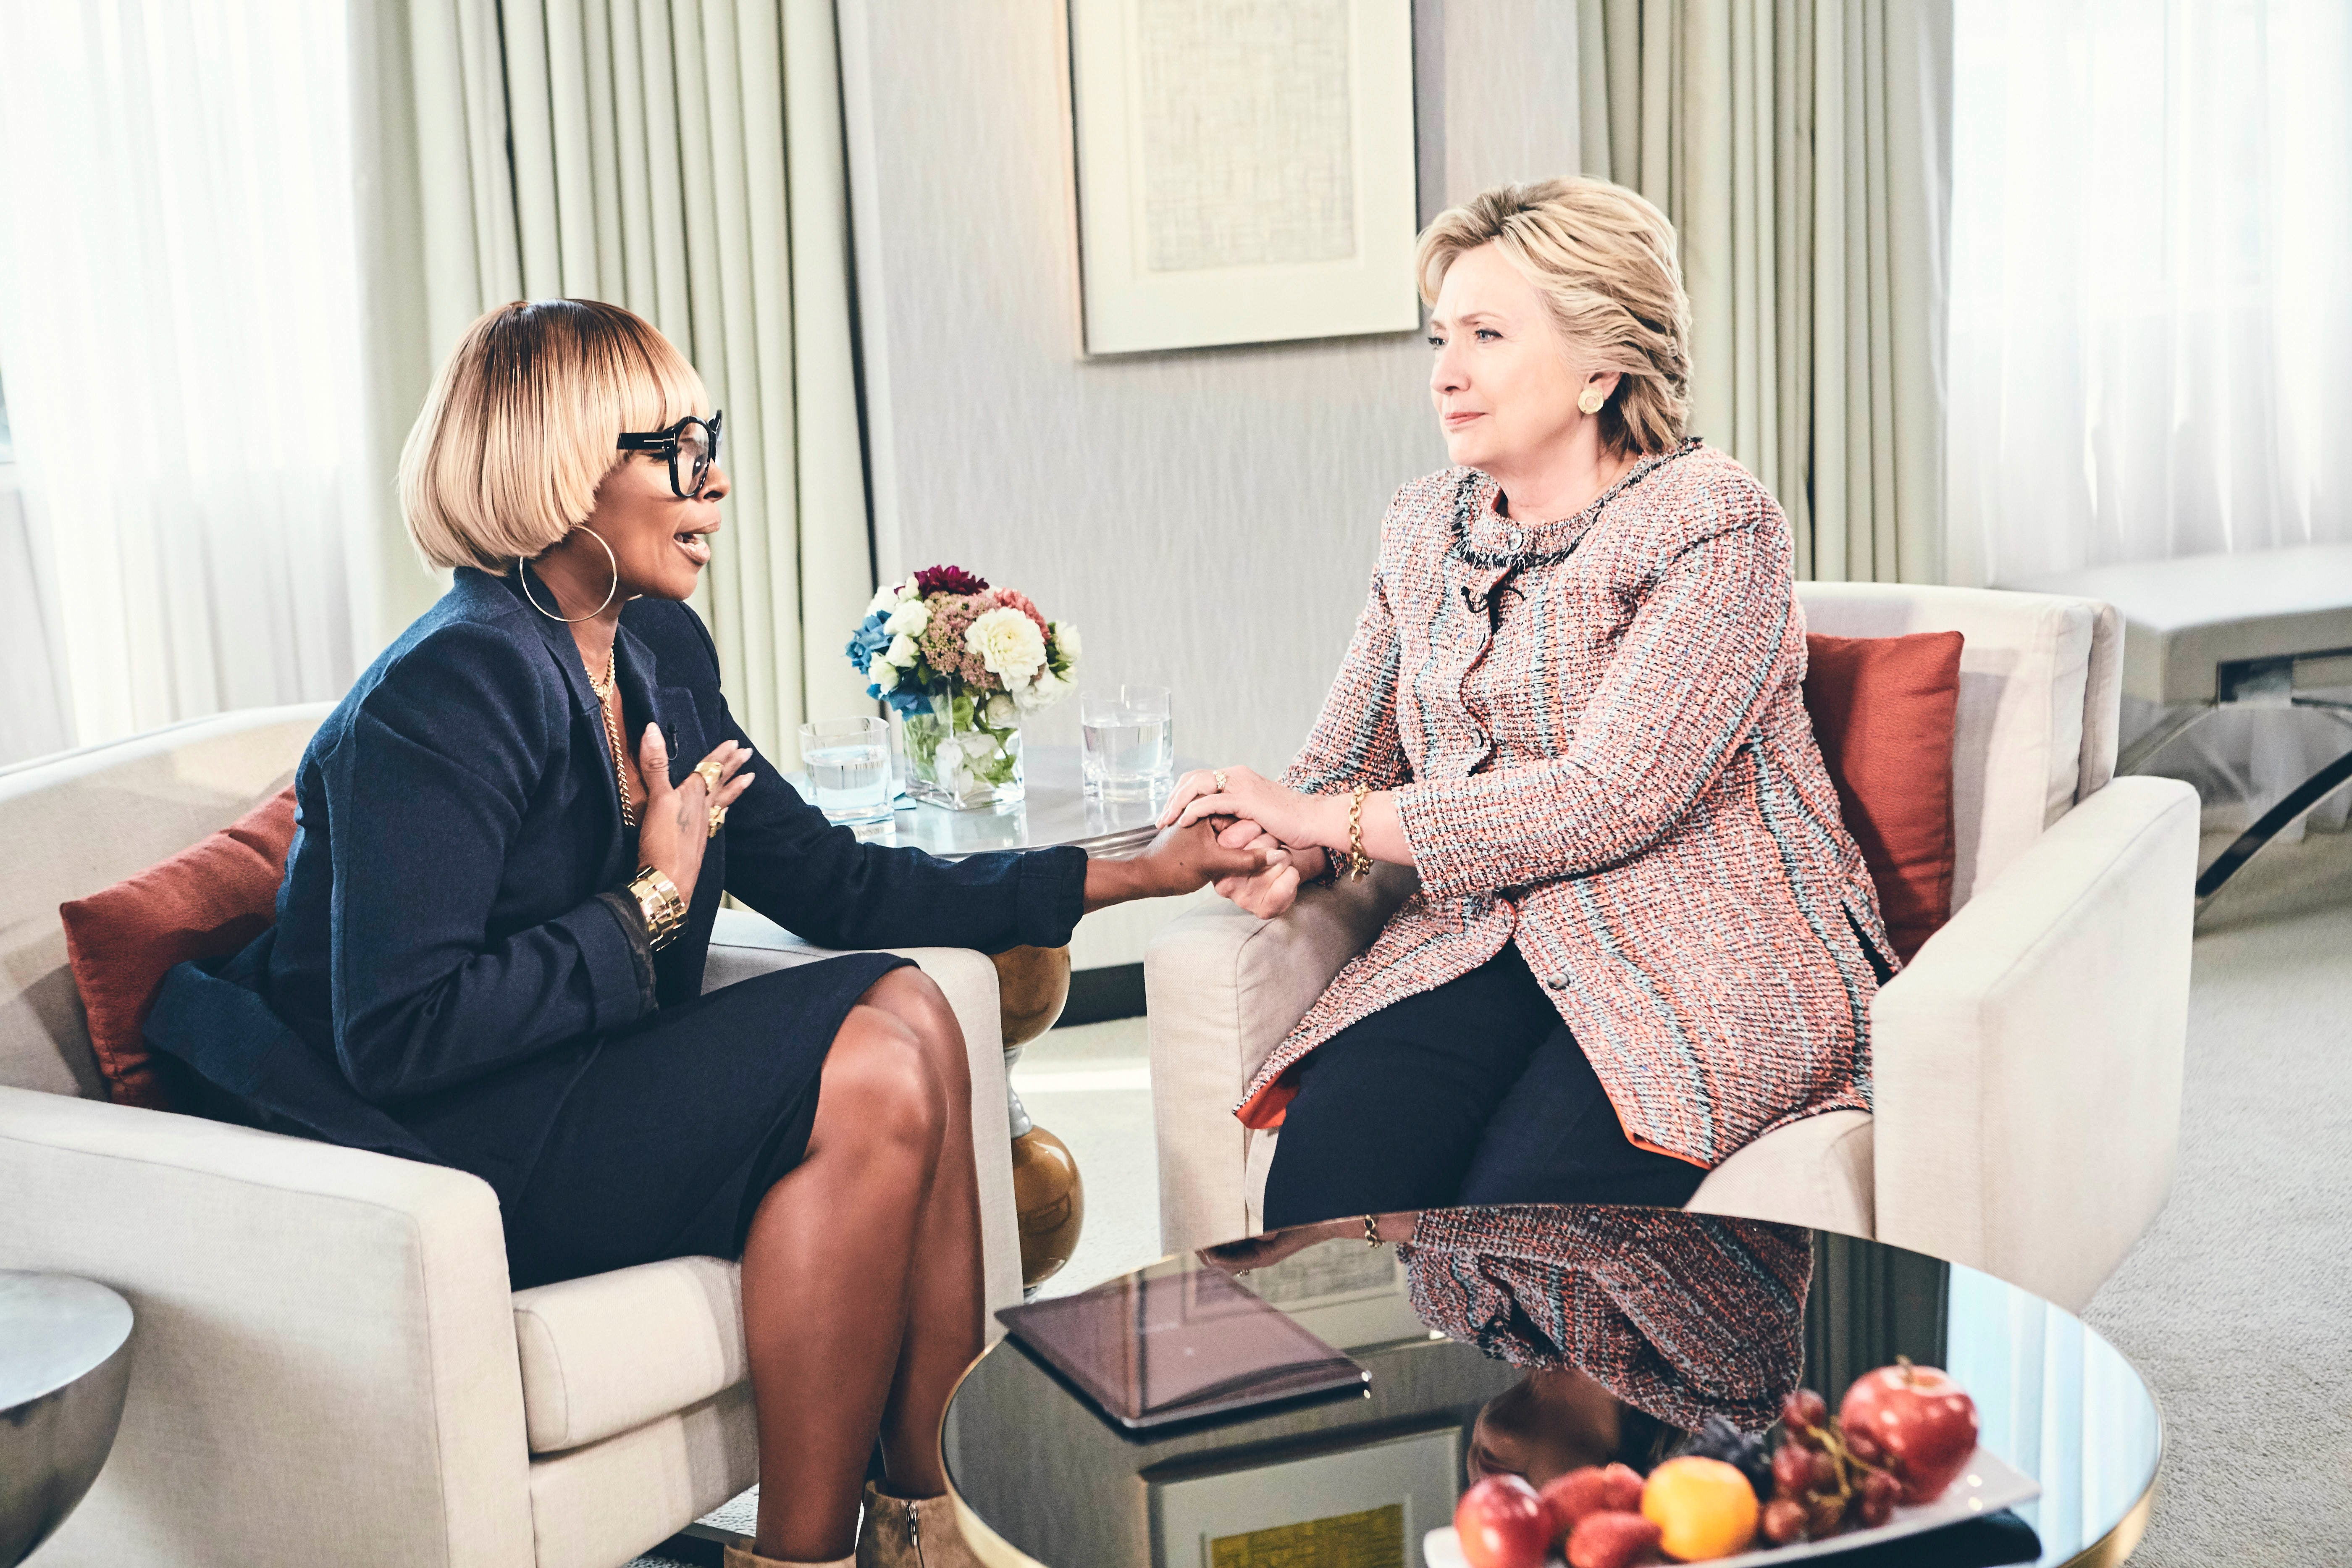 Here's The Real Story Behind That Video Of Mary J. Blige Singing To Hillary Clinton